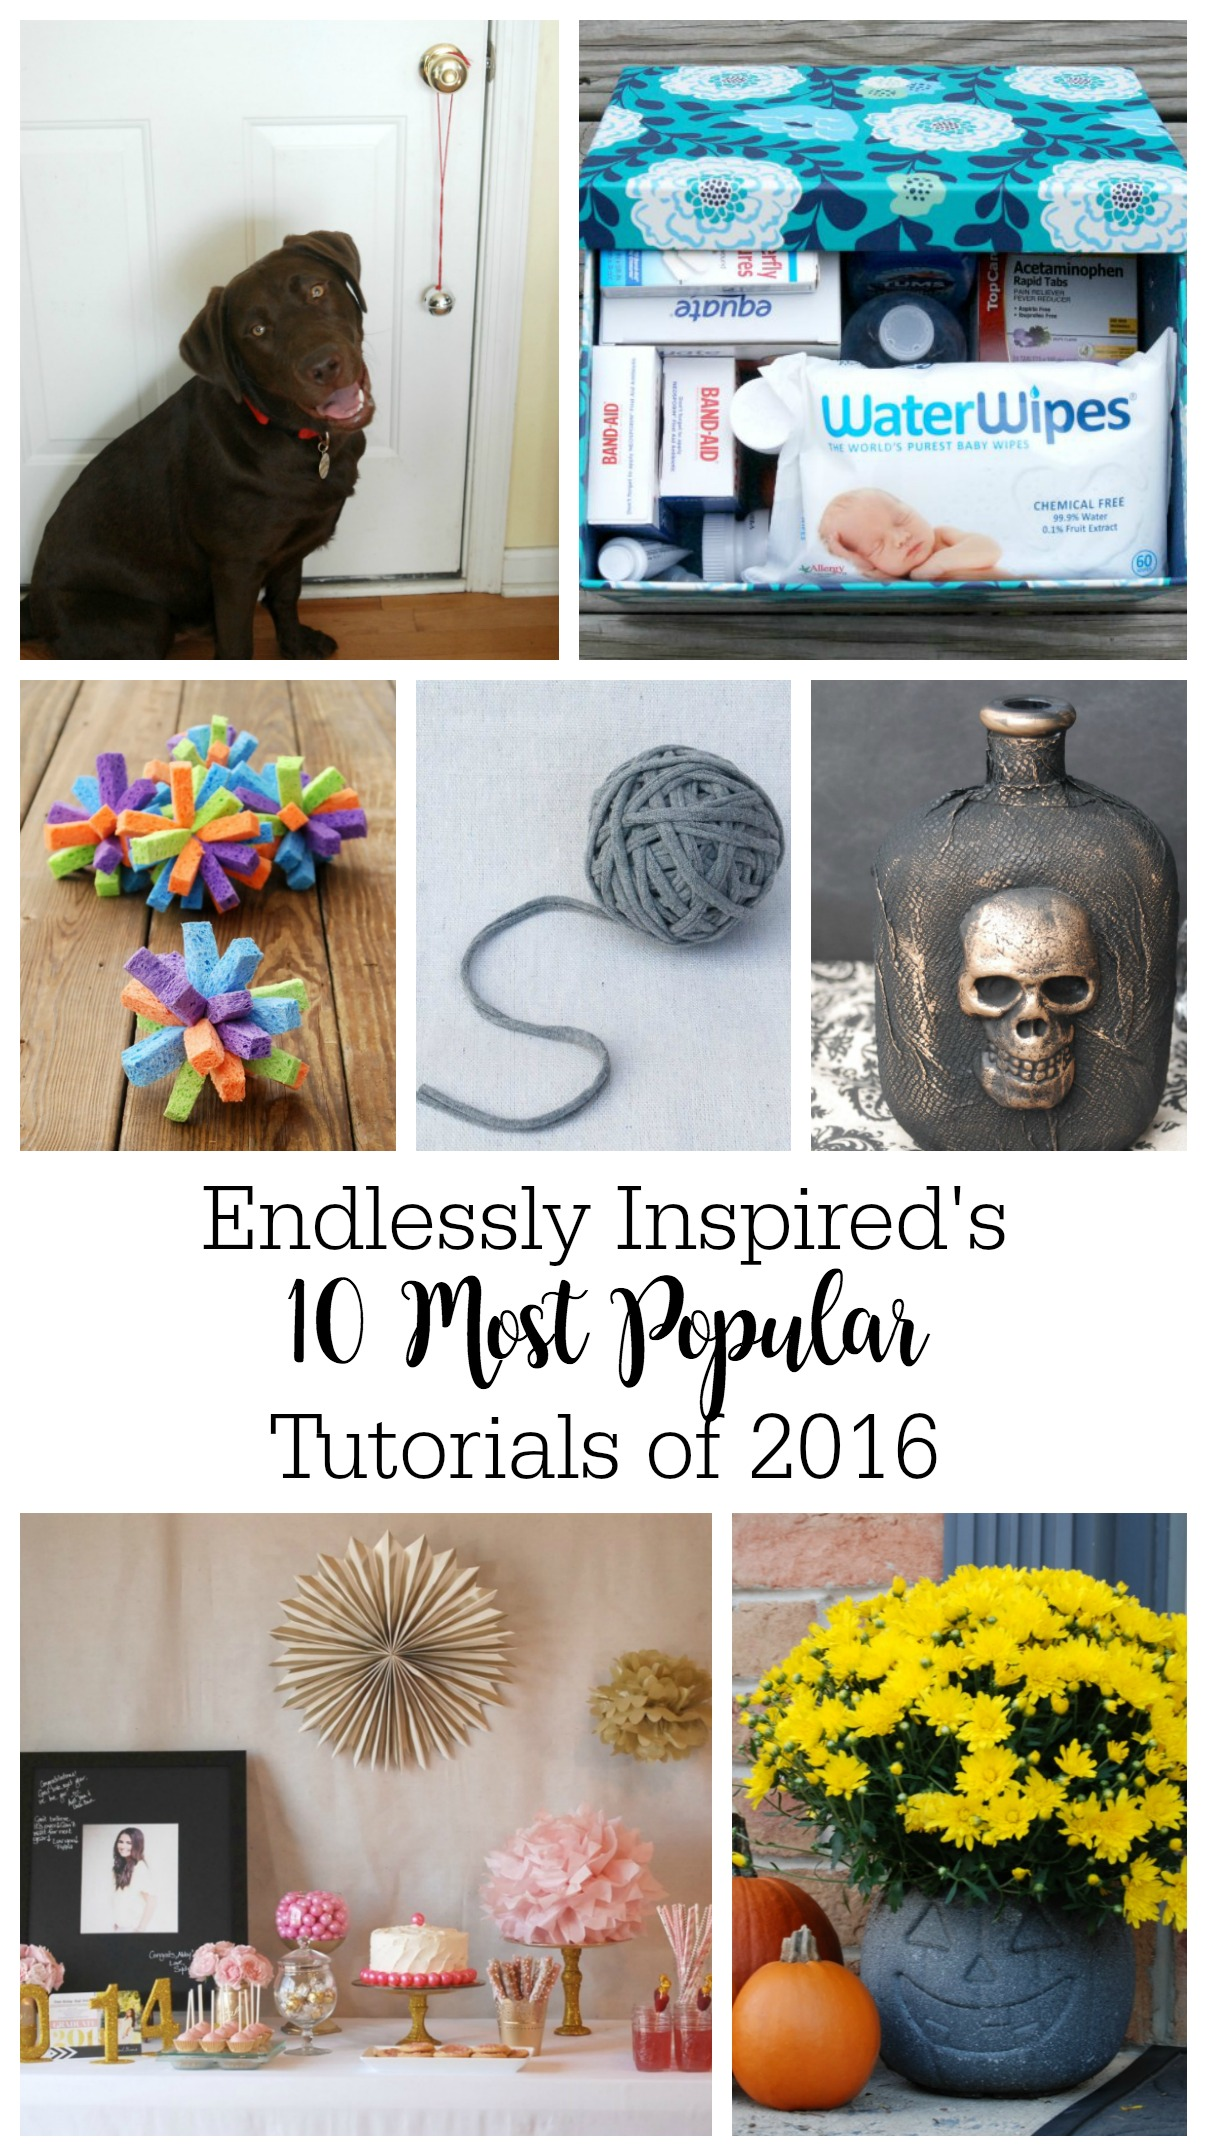 The 10 most popular tutorials from Endlessly Inspired in 2016